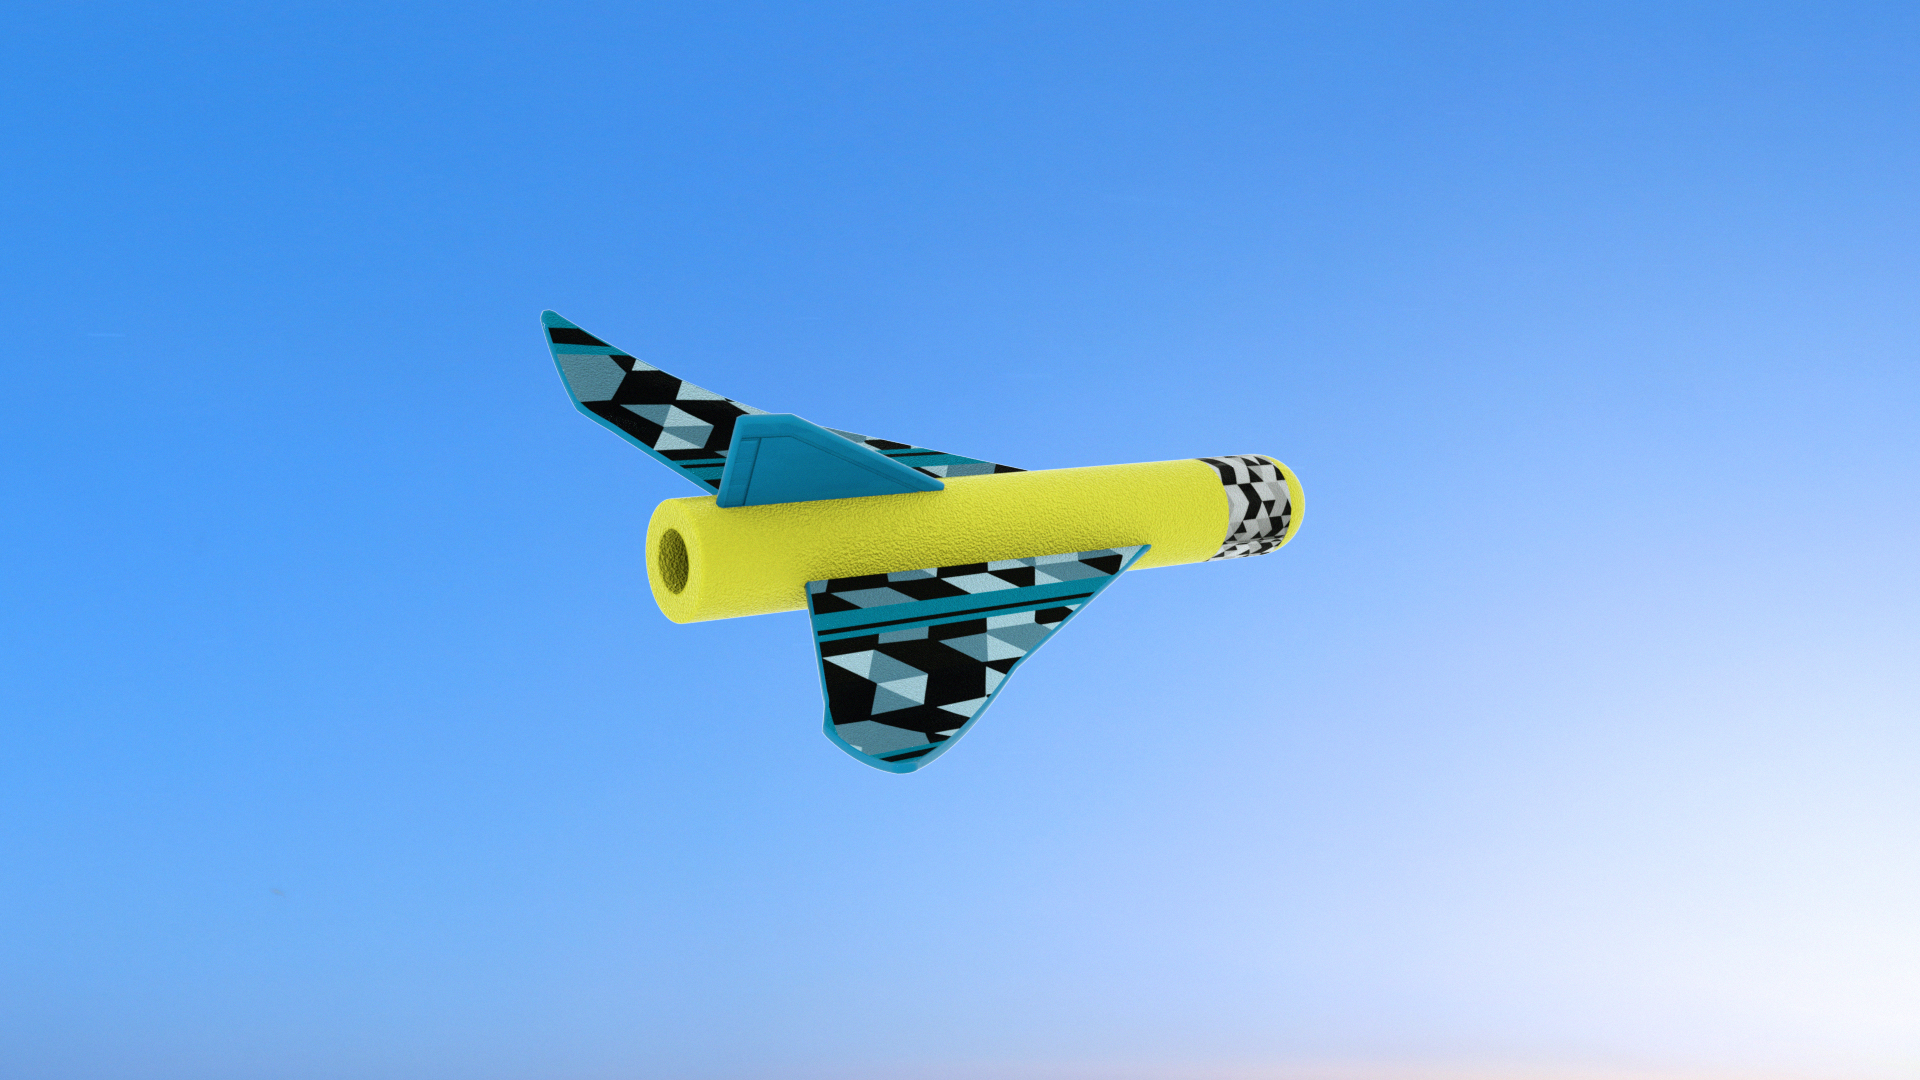 Stunt Planes by Stomp Rocket - Run, Jump and STOMP to launch Stunt Planes. These three different planes were designed by aeronautical engineers to perform amazing stunts.